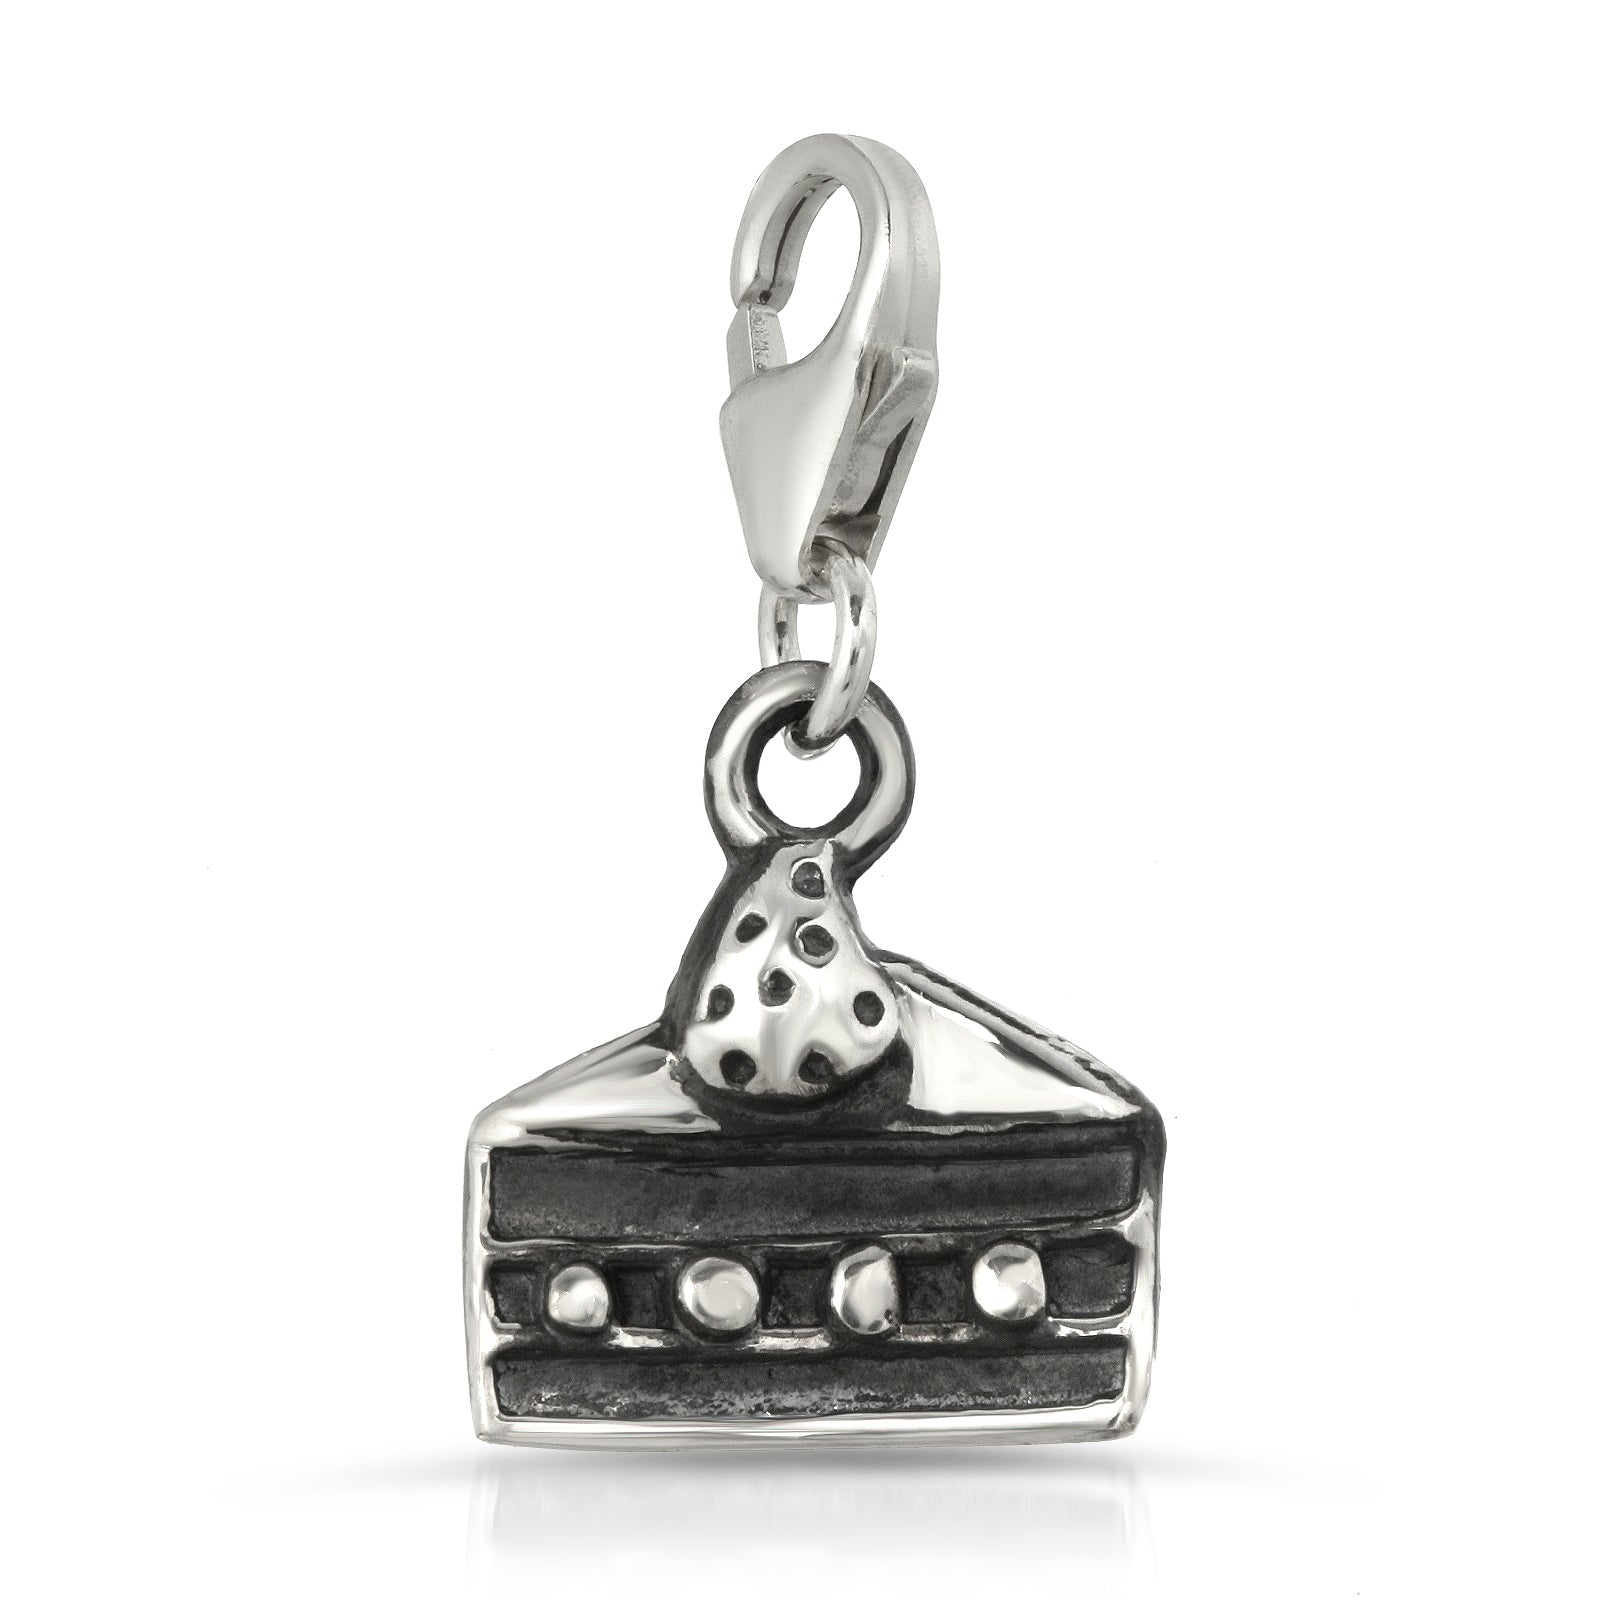 The W Brothers Premium Grade A 925 Sterling Silver Cake Charm Necklace, perfect for a fashionable statement for men and women's jewelry accessory. Available at www.thewbros.com